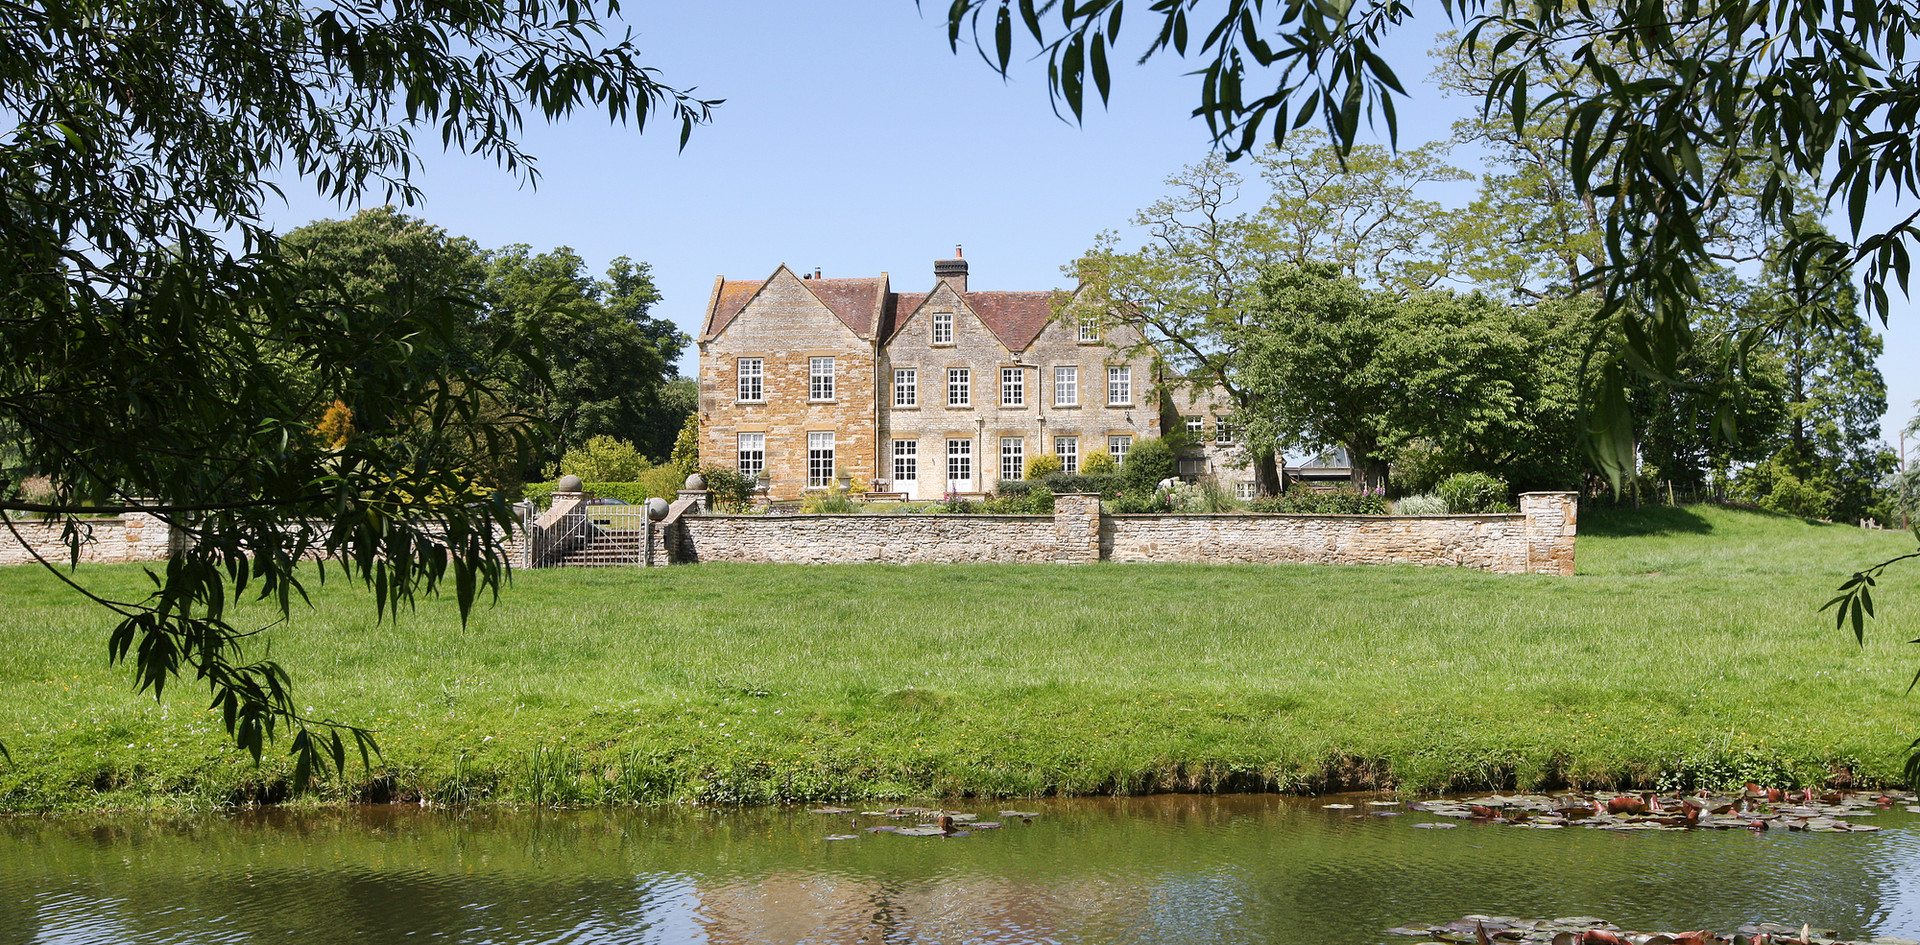 Talton House lily pond in front of Manor House